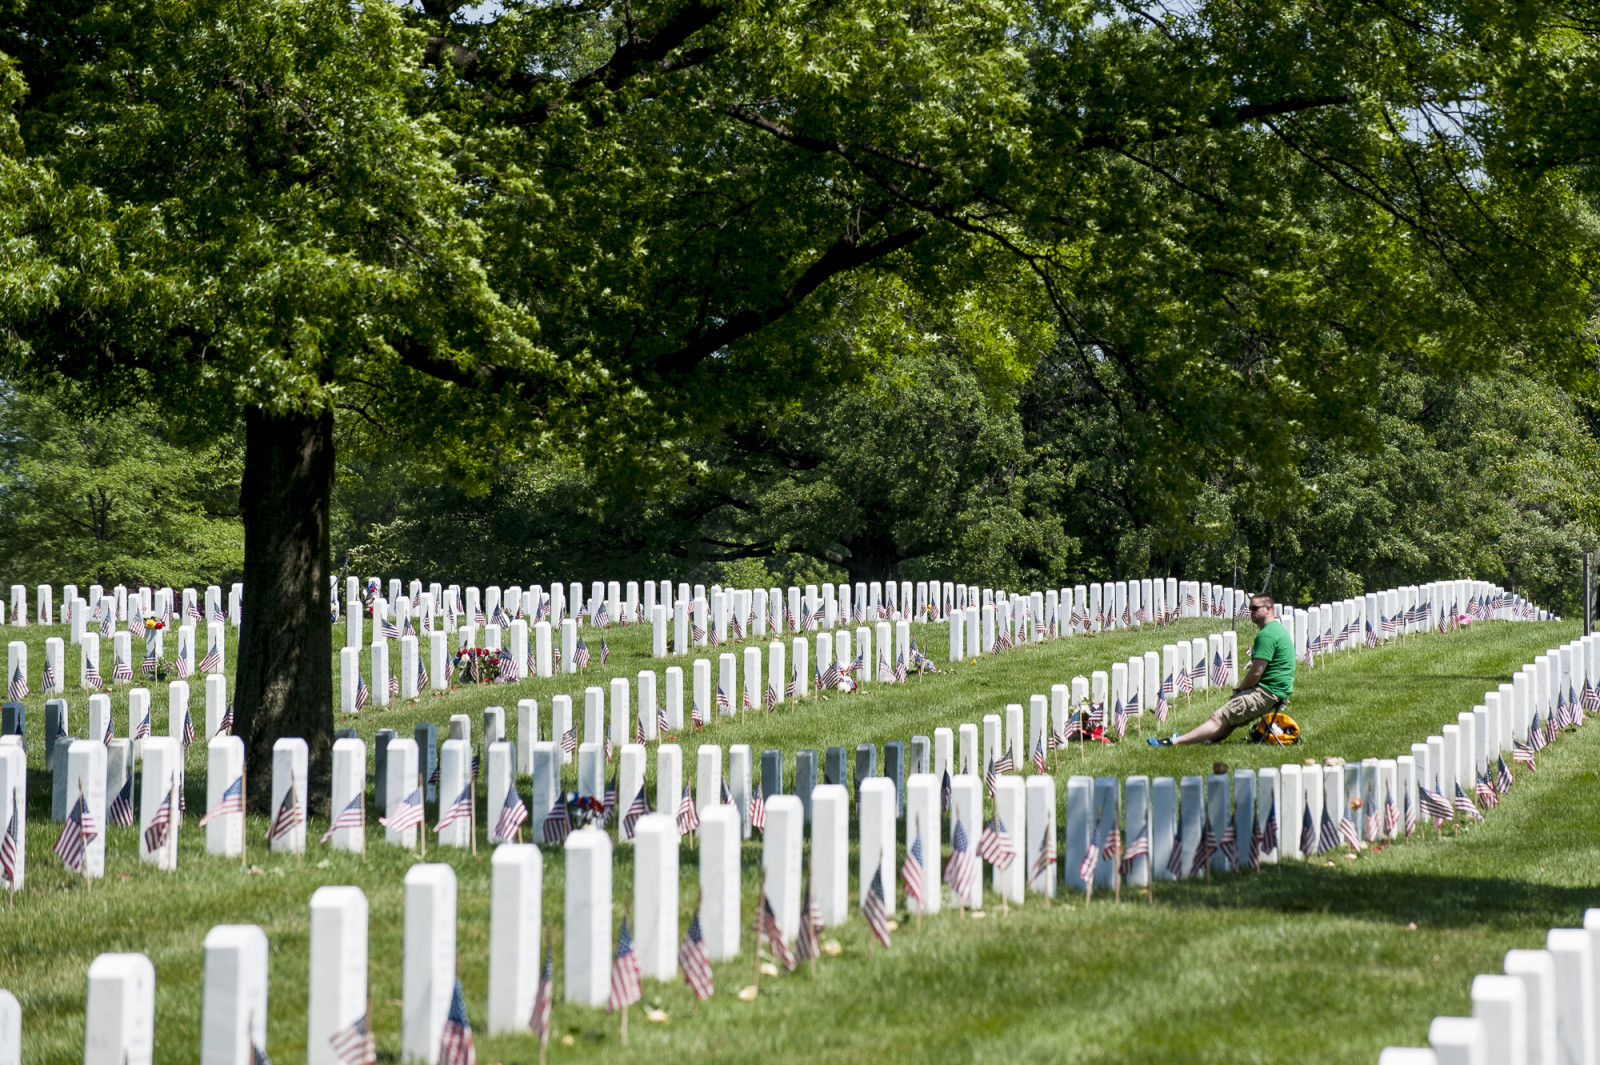 On Memoral Day, friends and relatives visit the graves of the fallen at Arlington National Cemetery in Arlington, Virginia, USA, on 25 May 2015. (Pete Marovich/ European PressPhoto Agency)